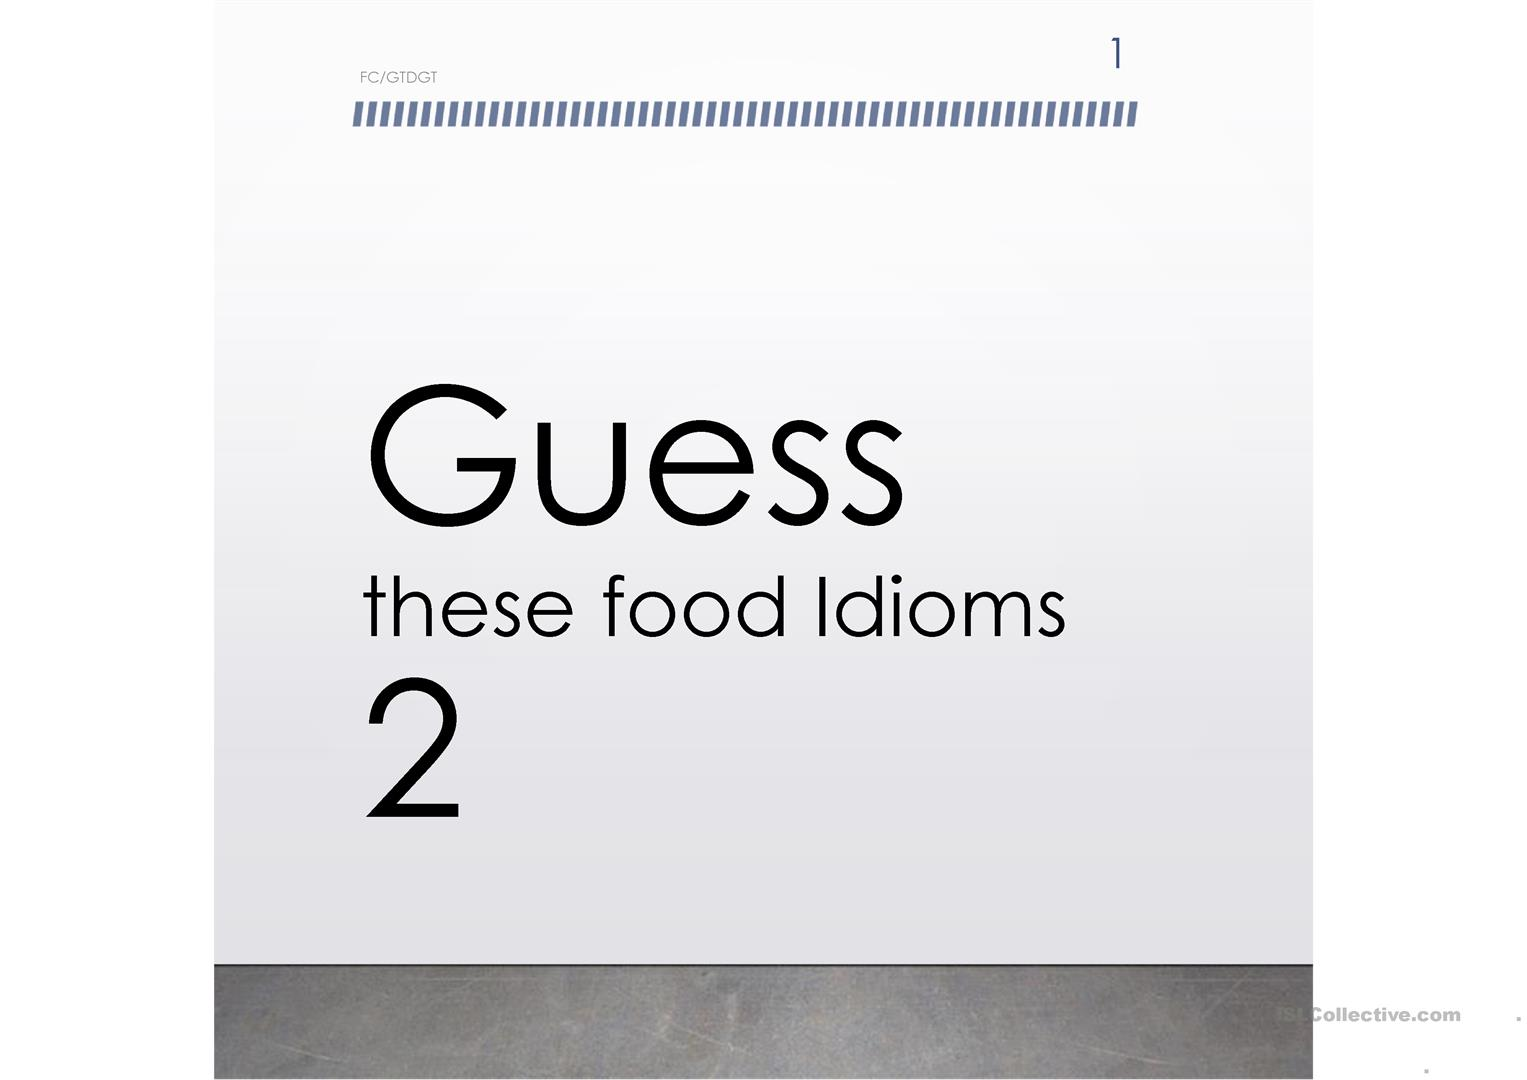 Guess The Food Idioms 2 Fc Gtdgt